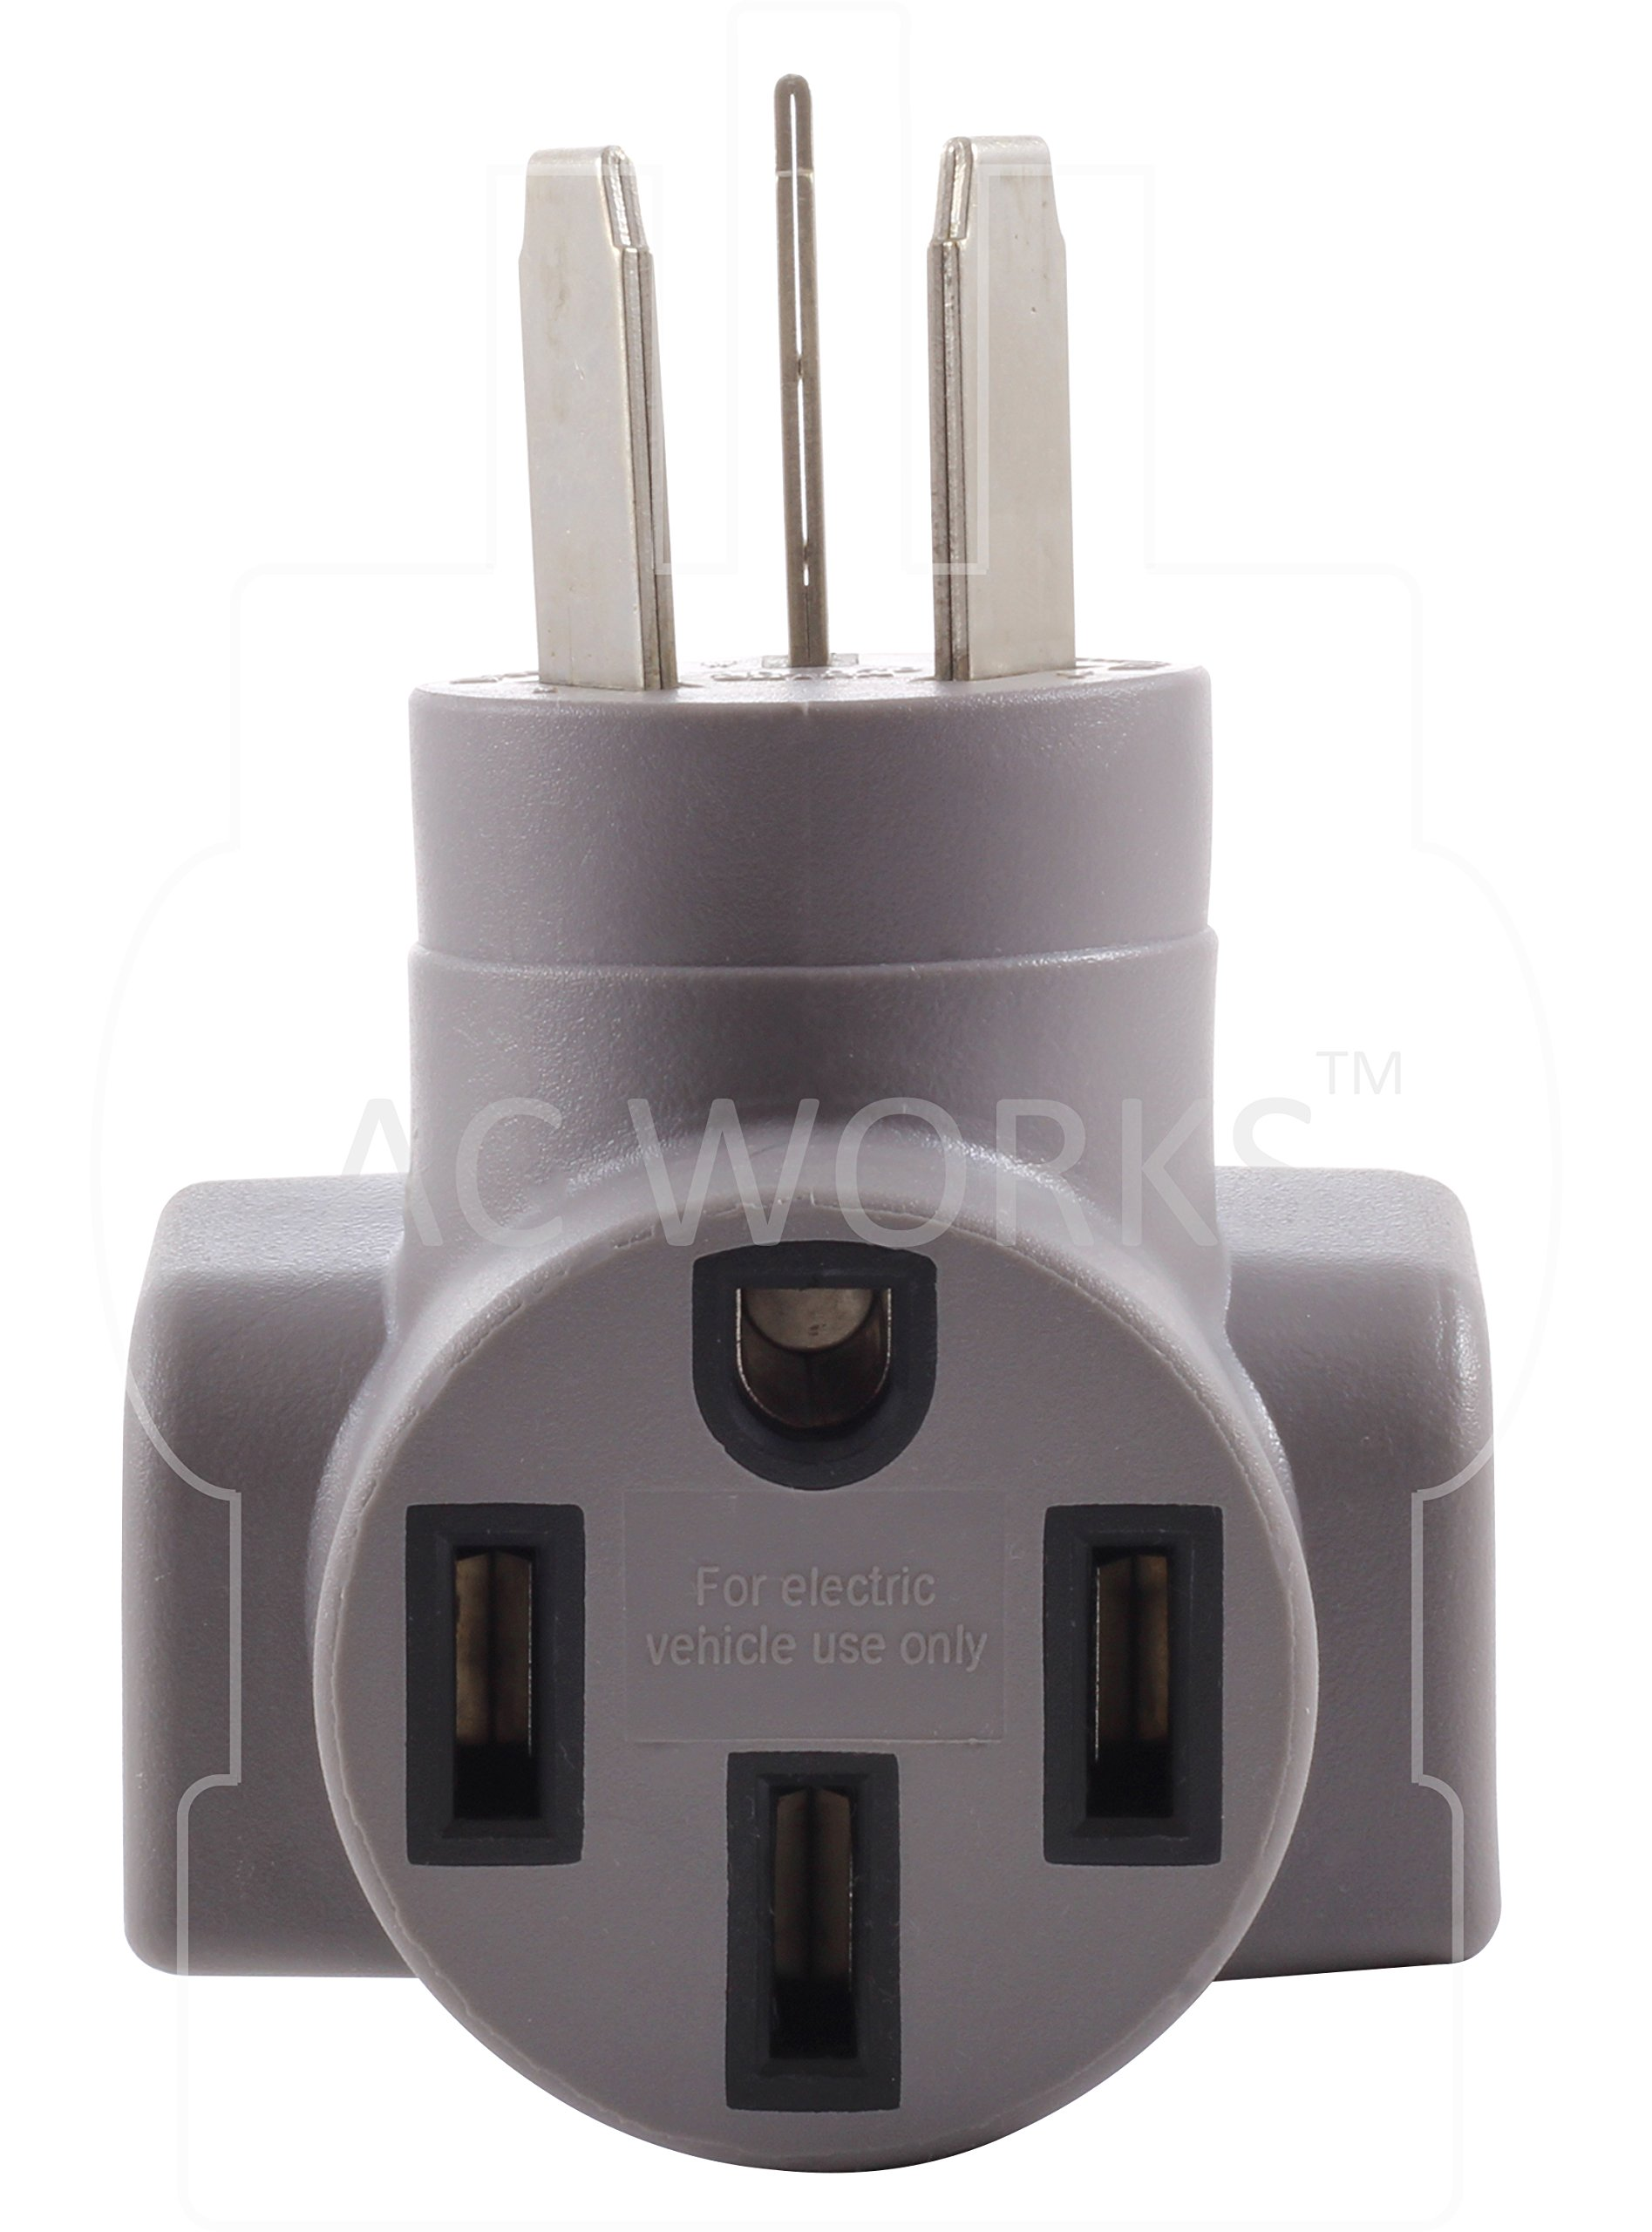 AC WORKS EV Charging Adapter for Tesla Use (10-50 50A 3-Prong Straight Blade to Tesla) by AC WORKS (Image #4)